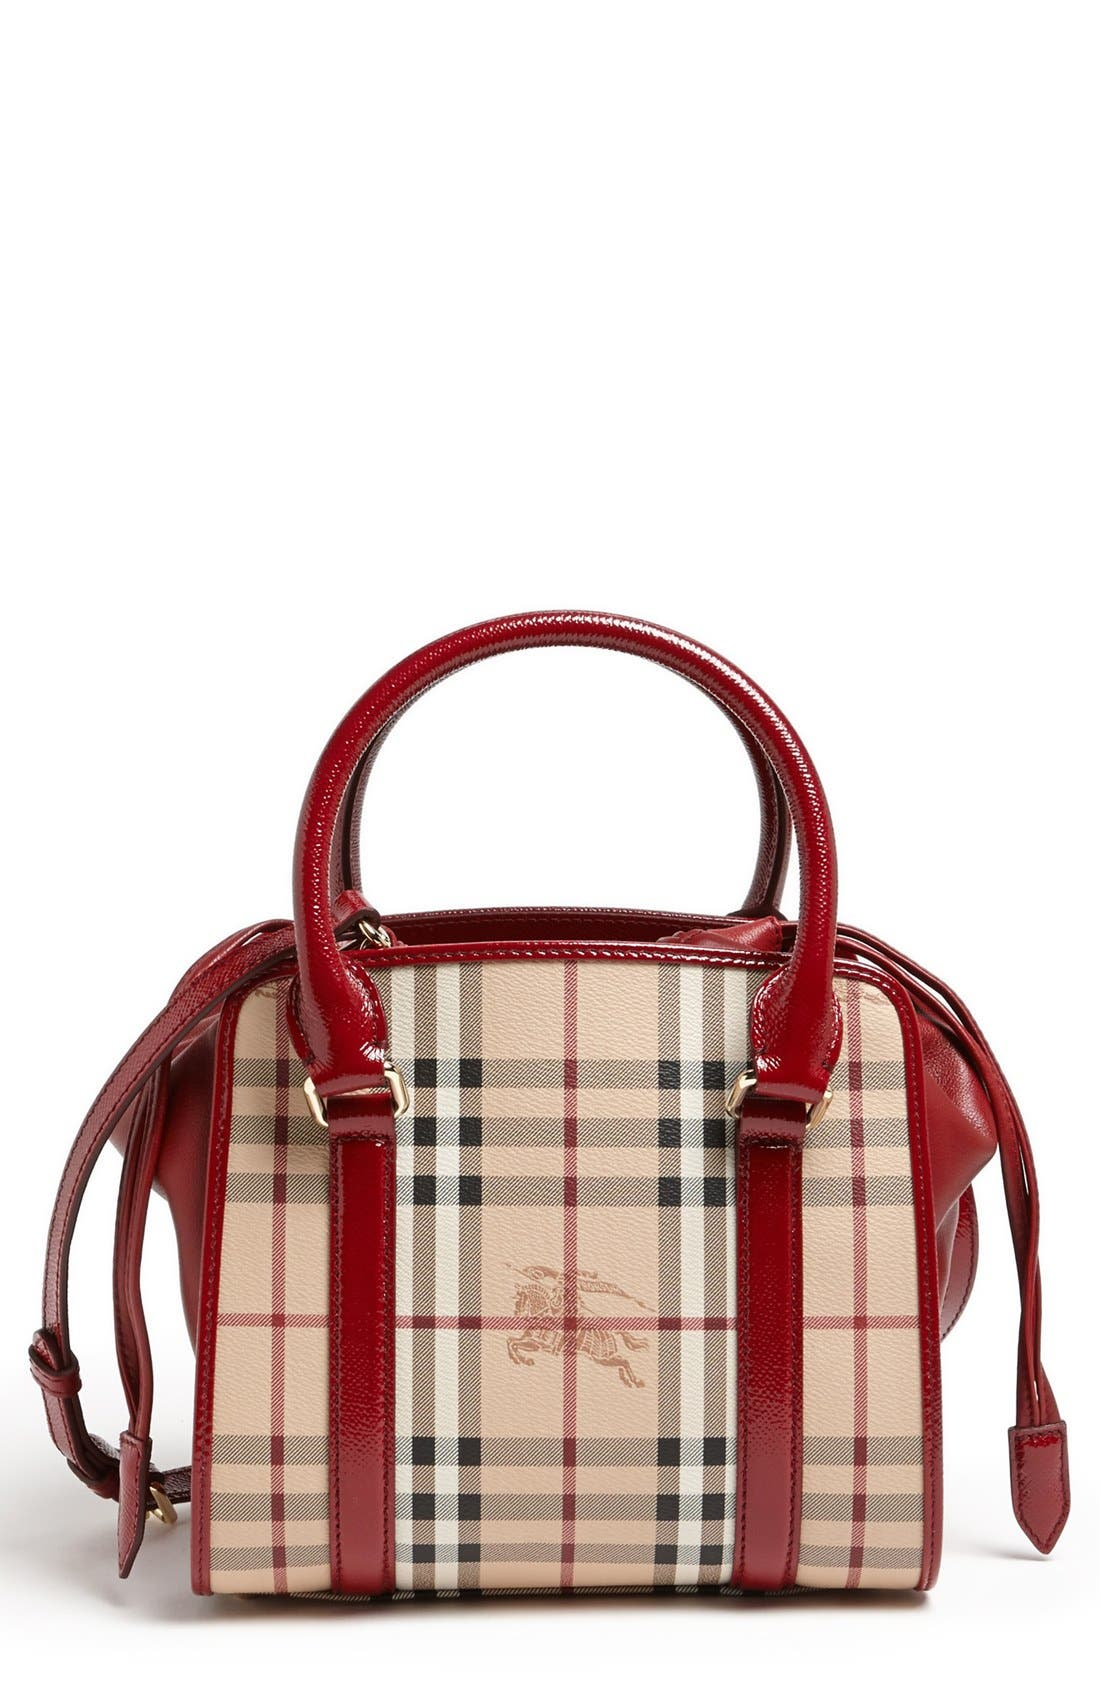 Main Image - Burberry 'Small Dinton' Satchel